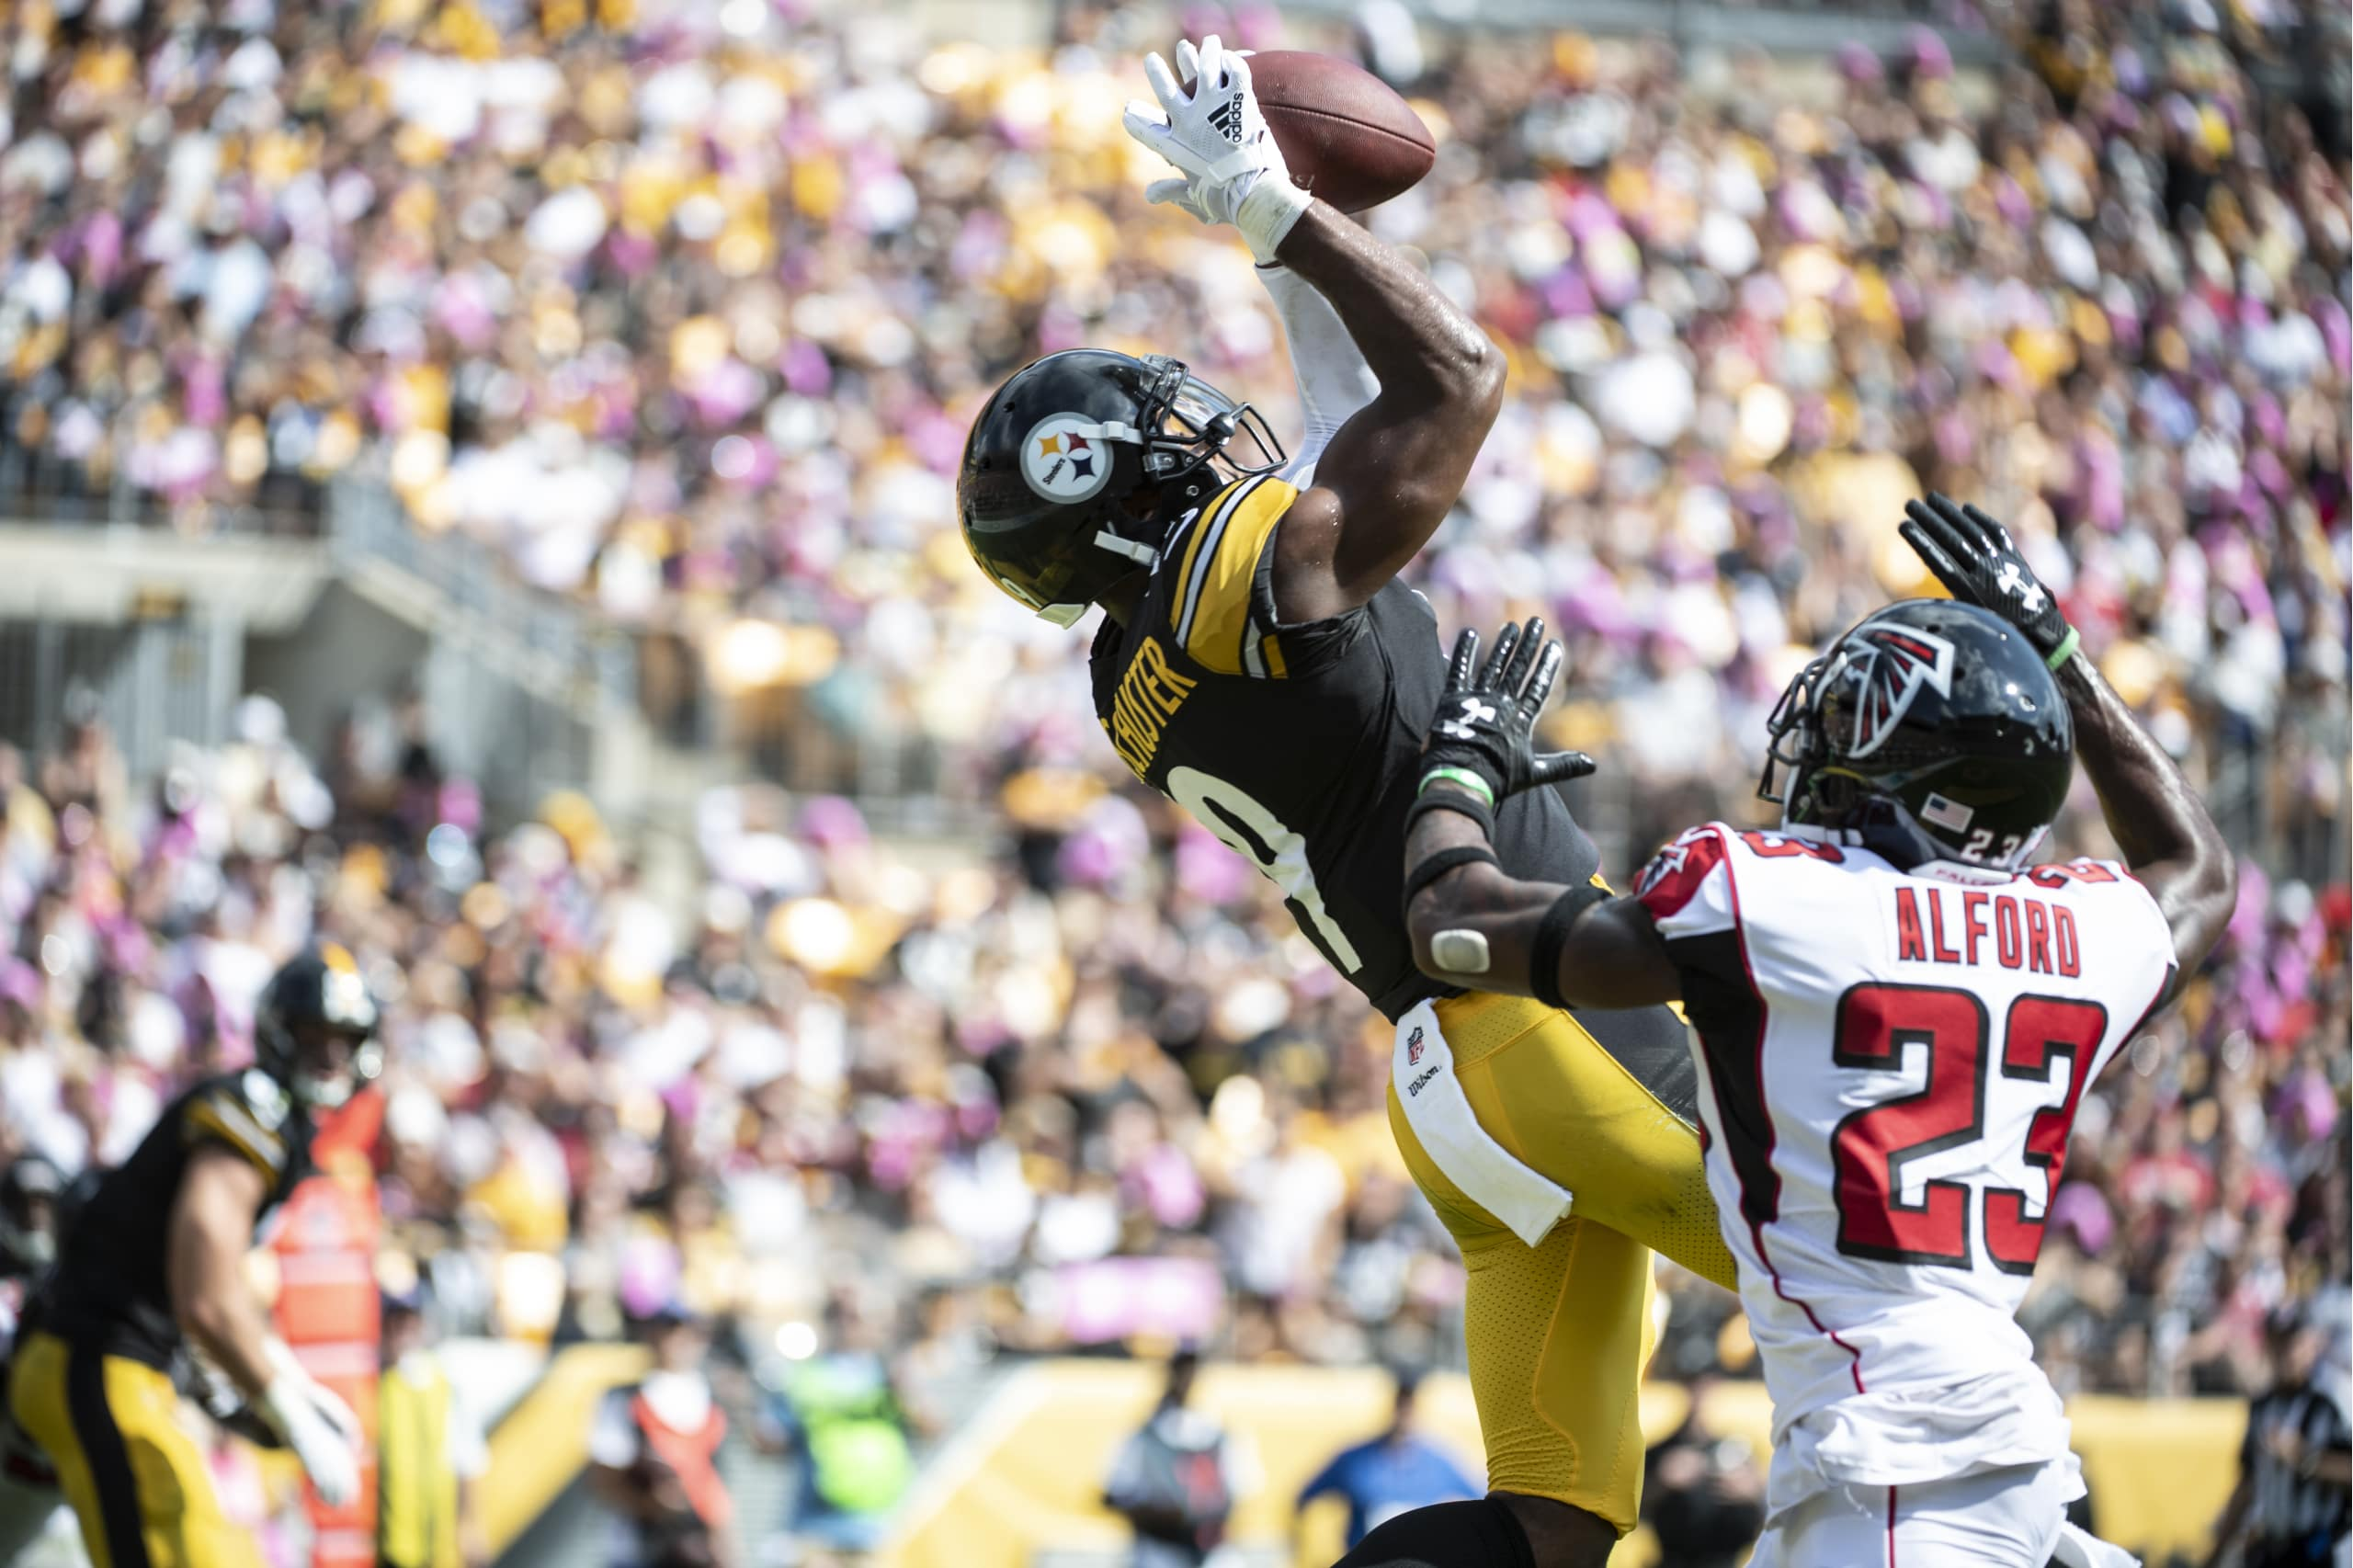 53830fda24d Don t tell Steelers leading wide out JuJu Smith-Schuster that he s not  going to play in Sunday s huge game down in New Orleans against the Saints  despite a ...